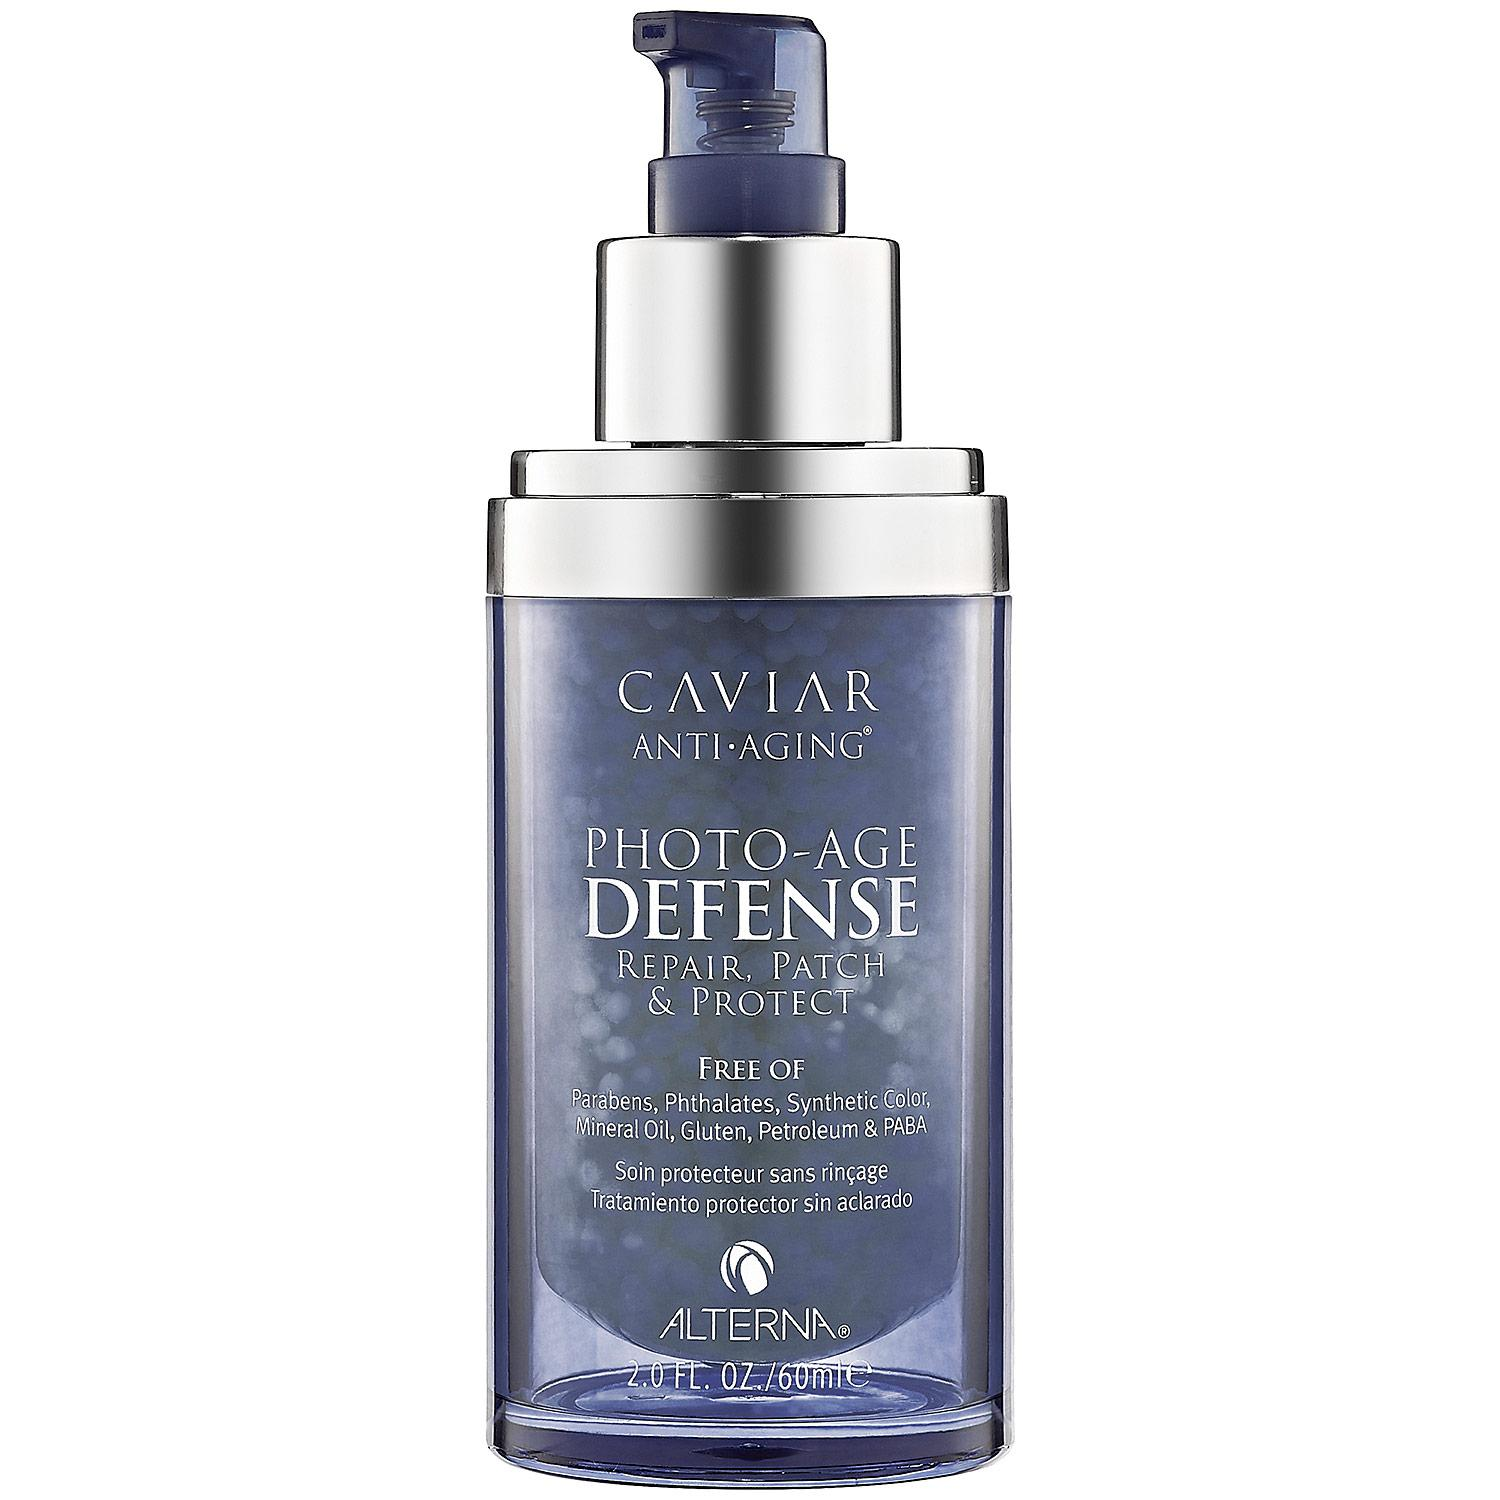 Caviar Anti-Aging® Photo-Age Defense